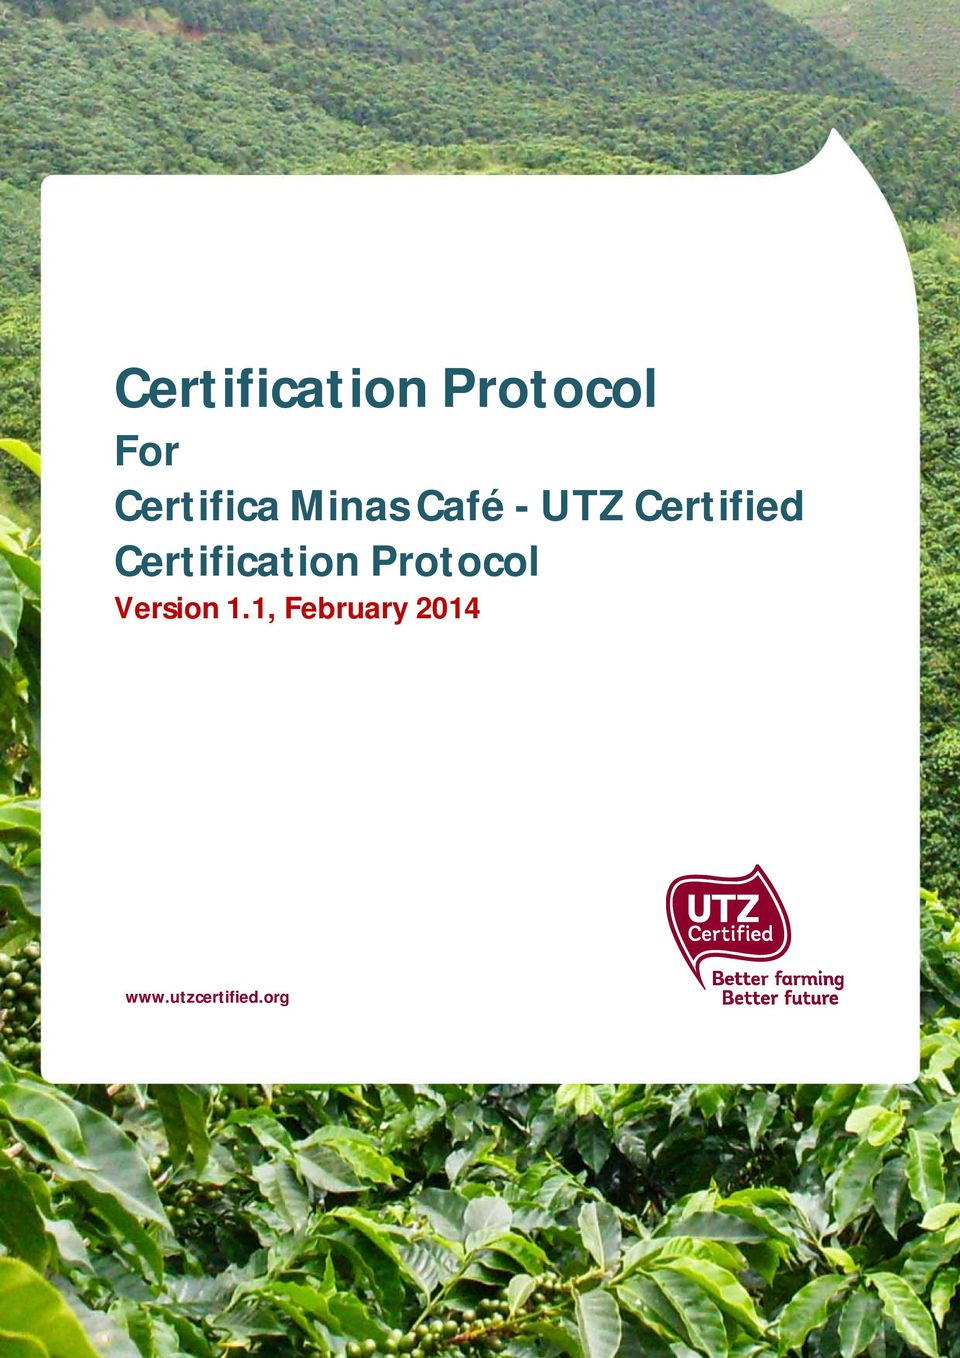 Certified Certification Protocol